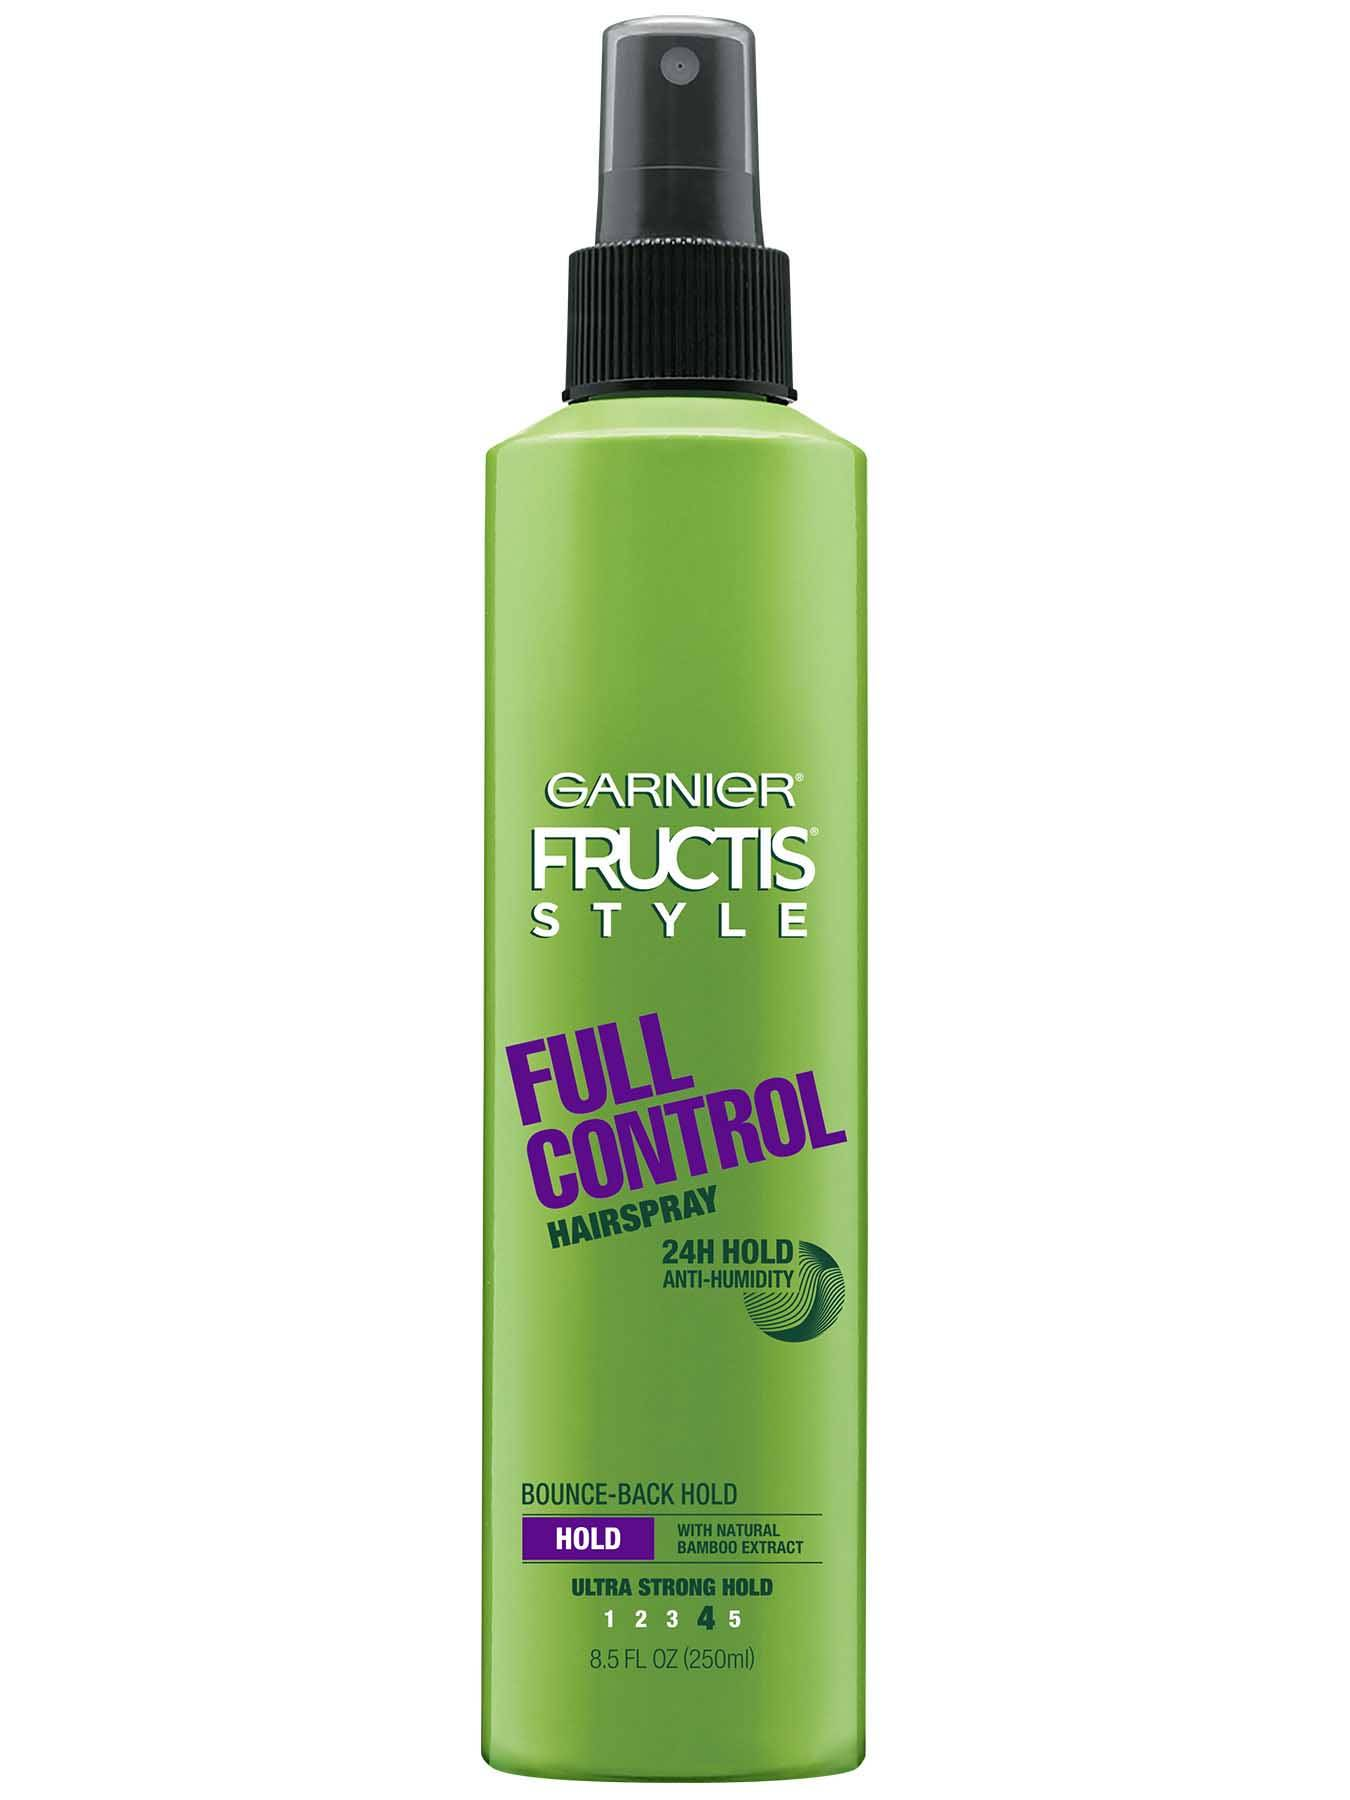 Front view of Full Control Anti-Humidity Non Aerosol Hairspray.